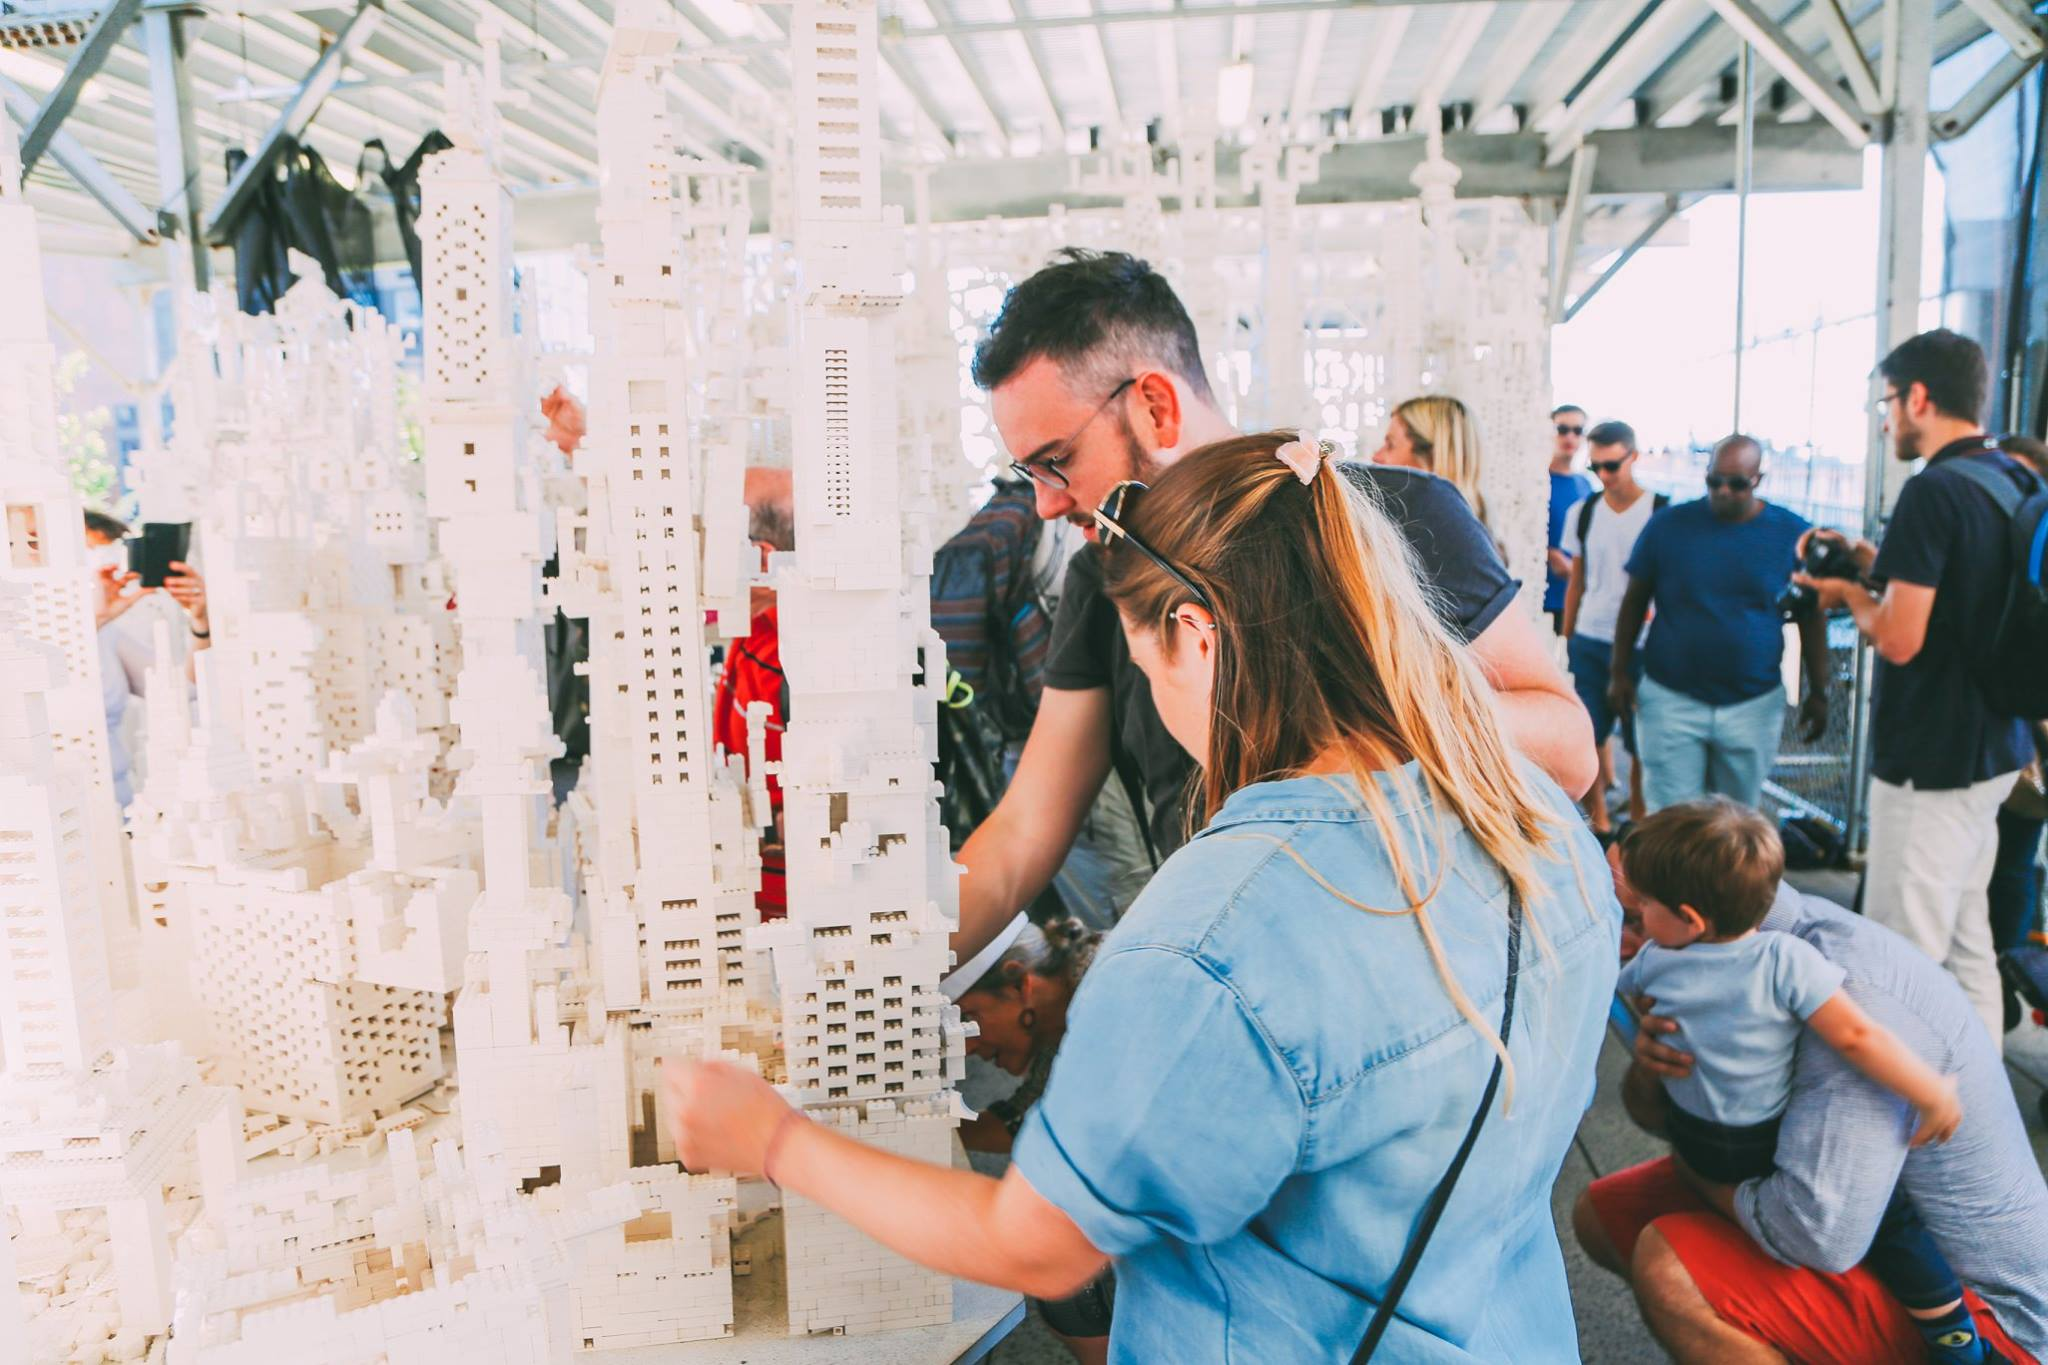 New York Diary: The High Line, Lego House And New York Fashion Week (13)